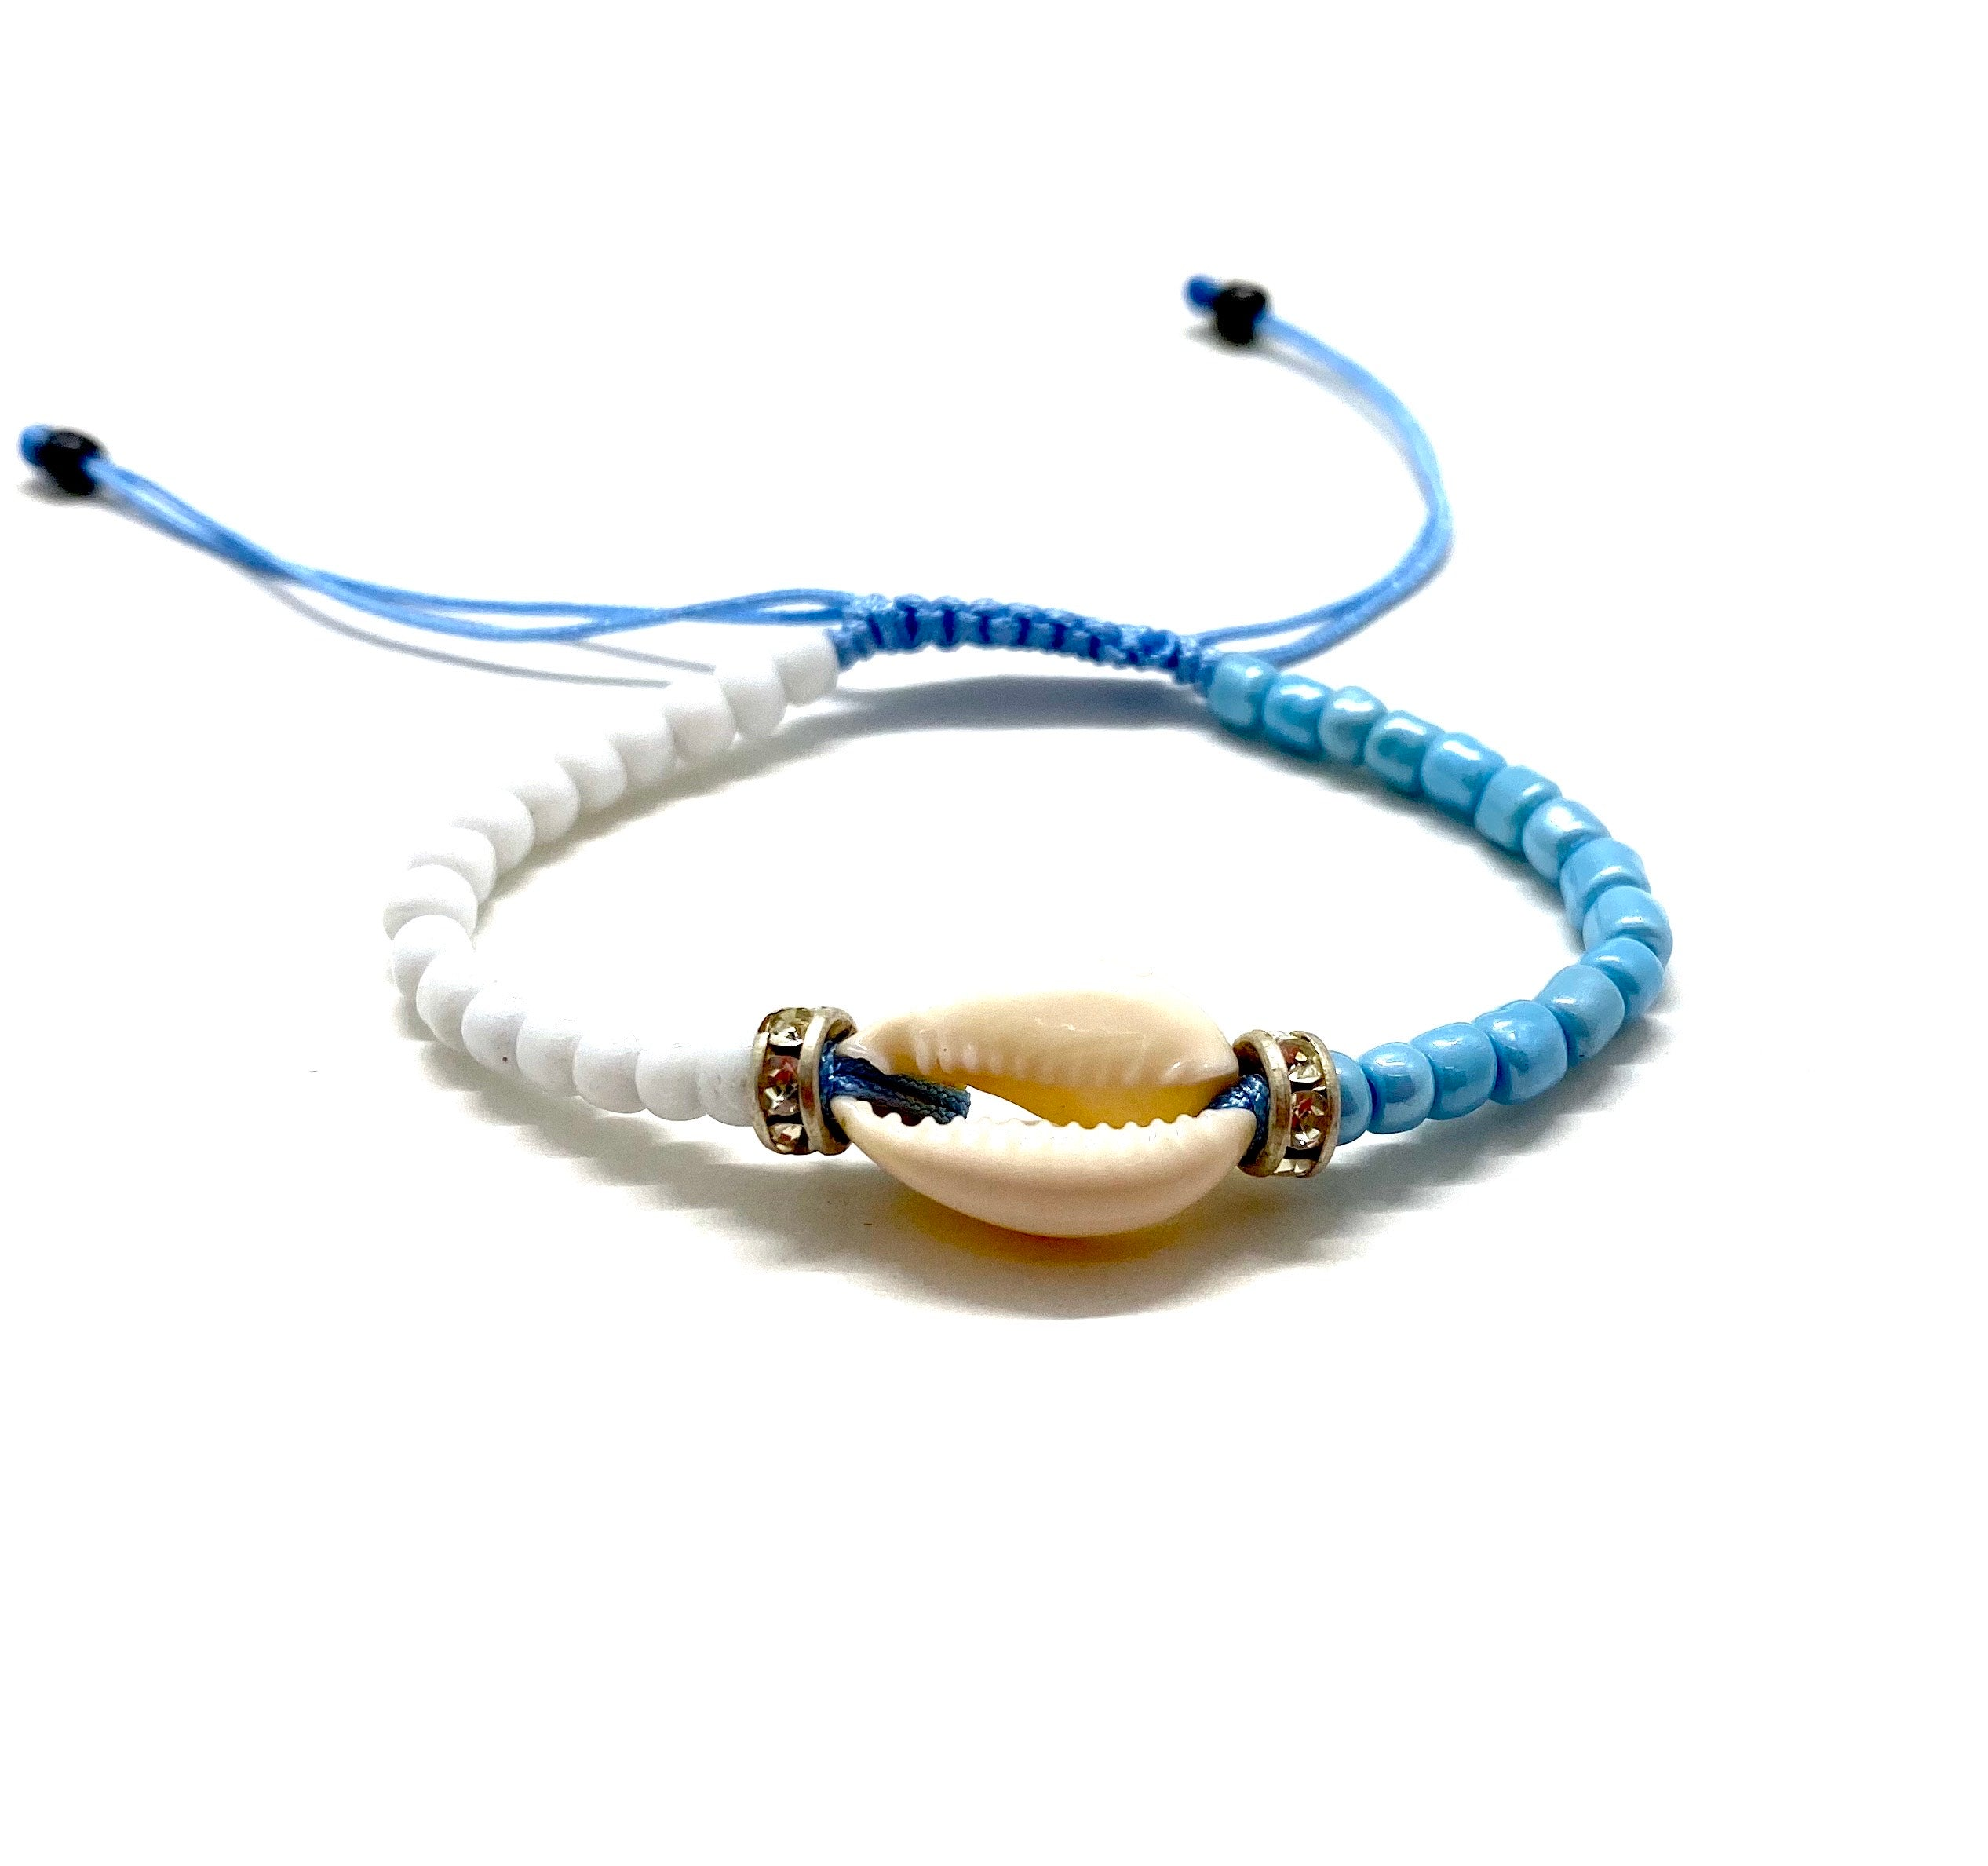 Natural shell bracelet with half white beads half blue beads